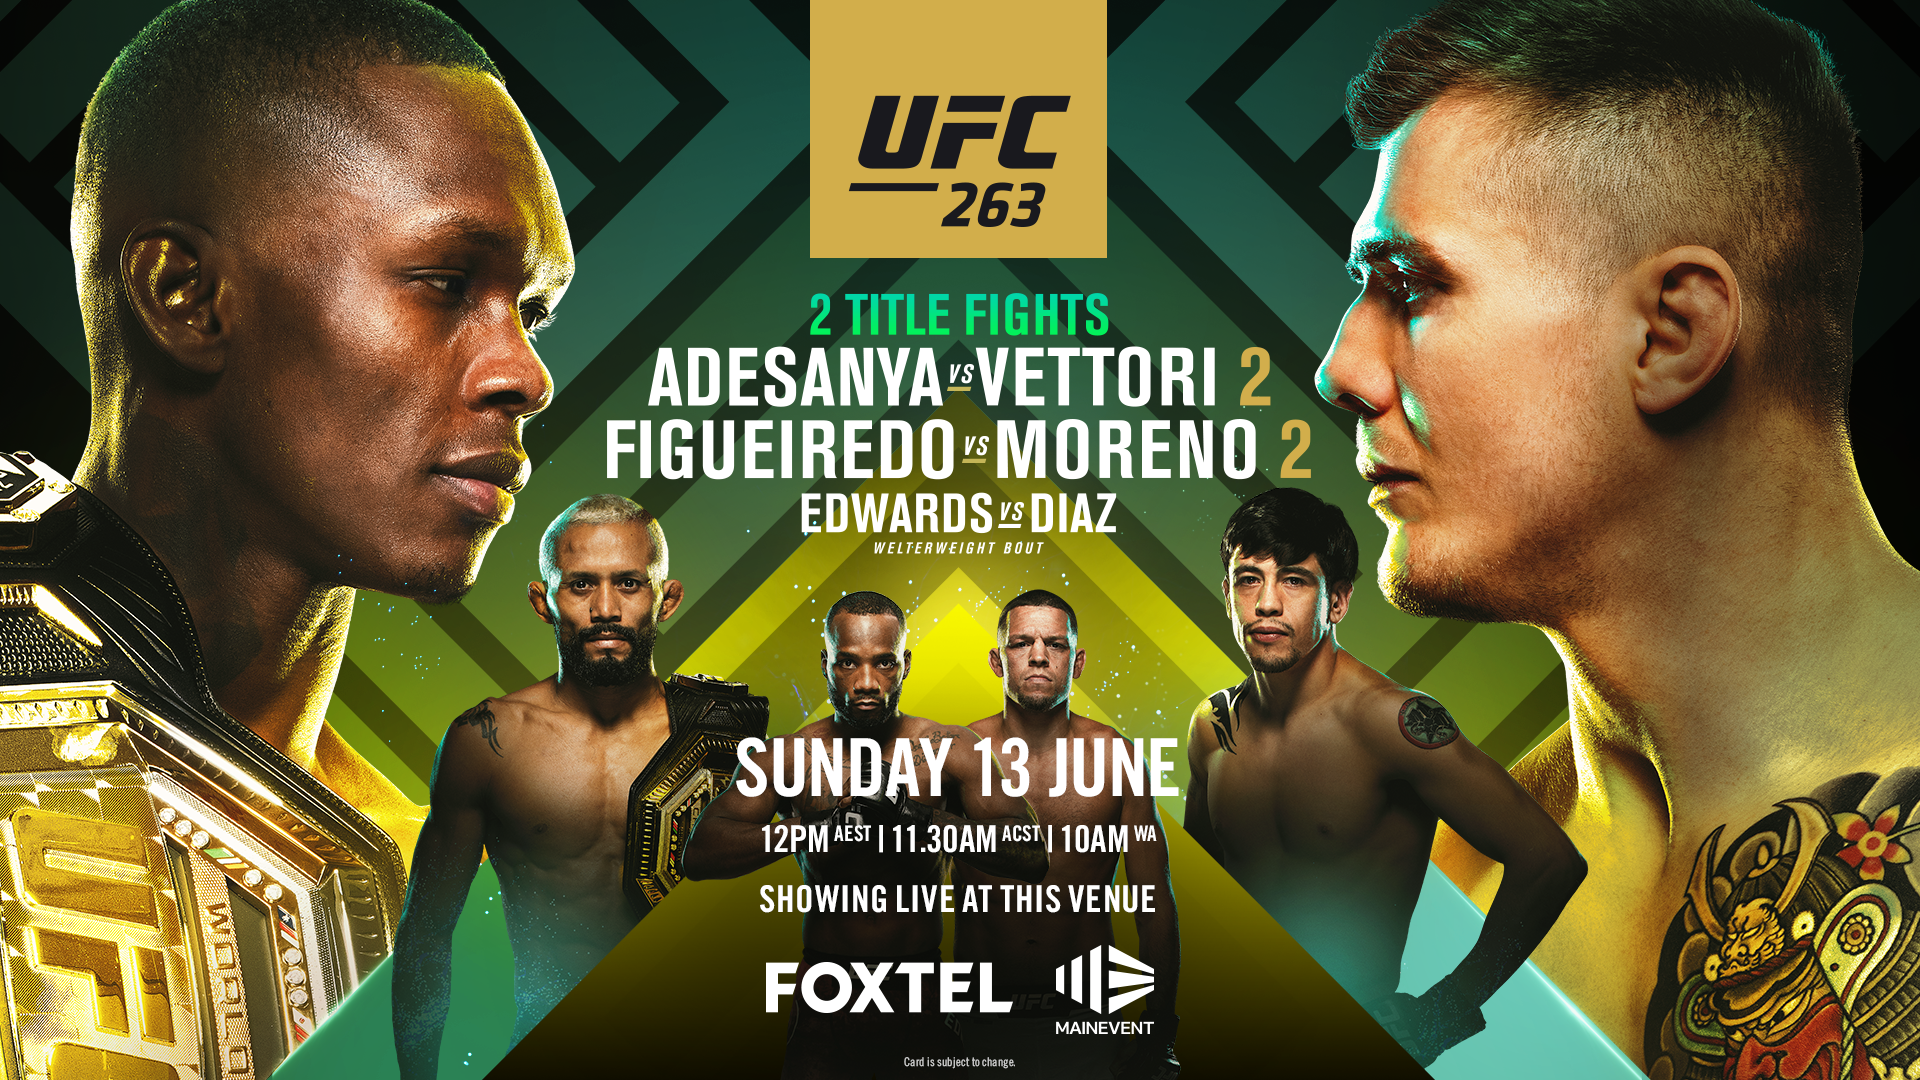 UFC263 live at Tradies Helensburgh